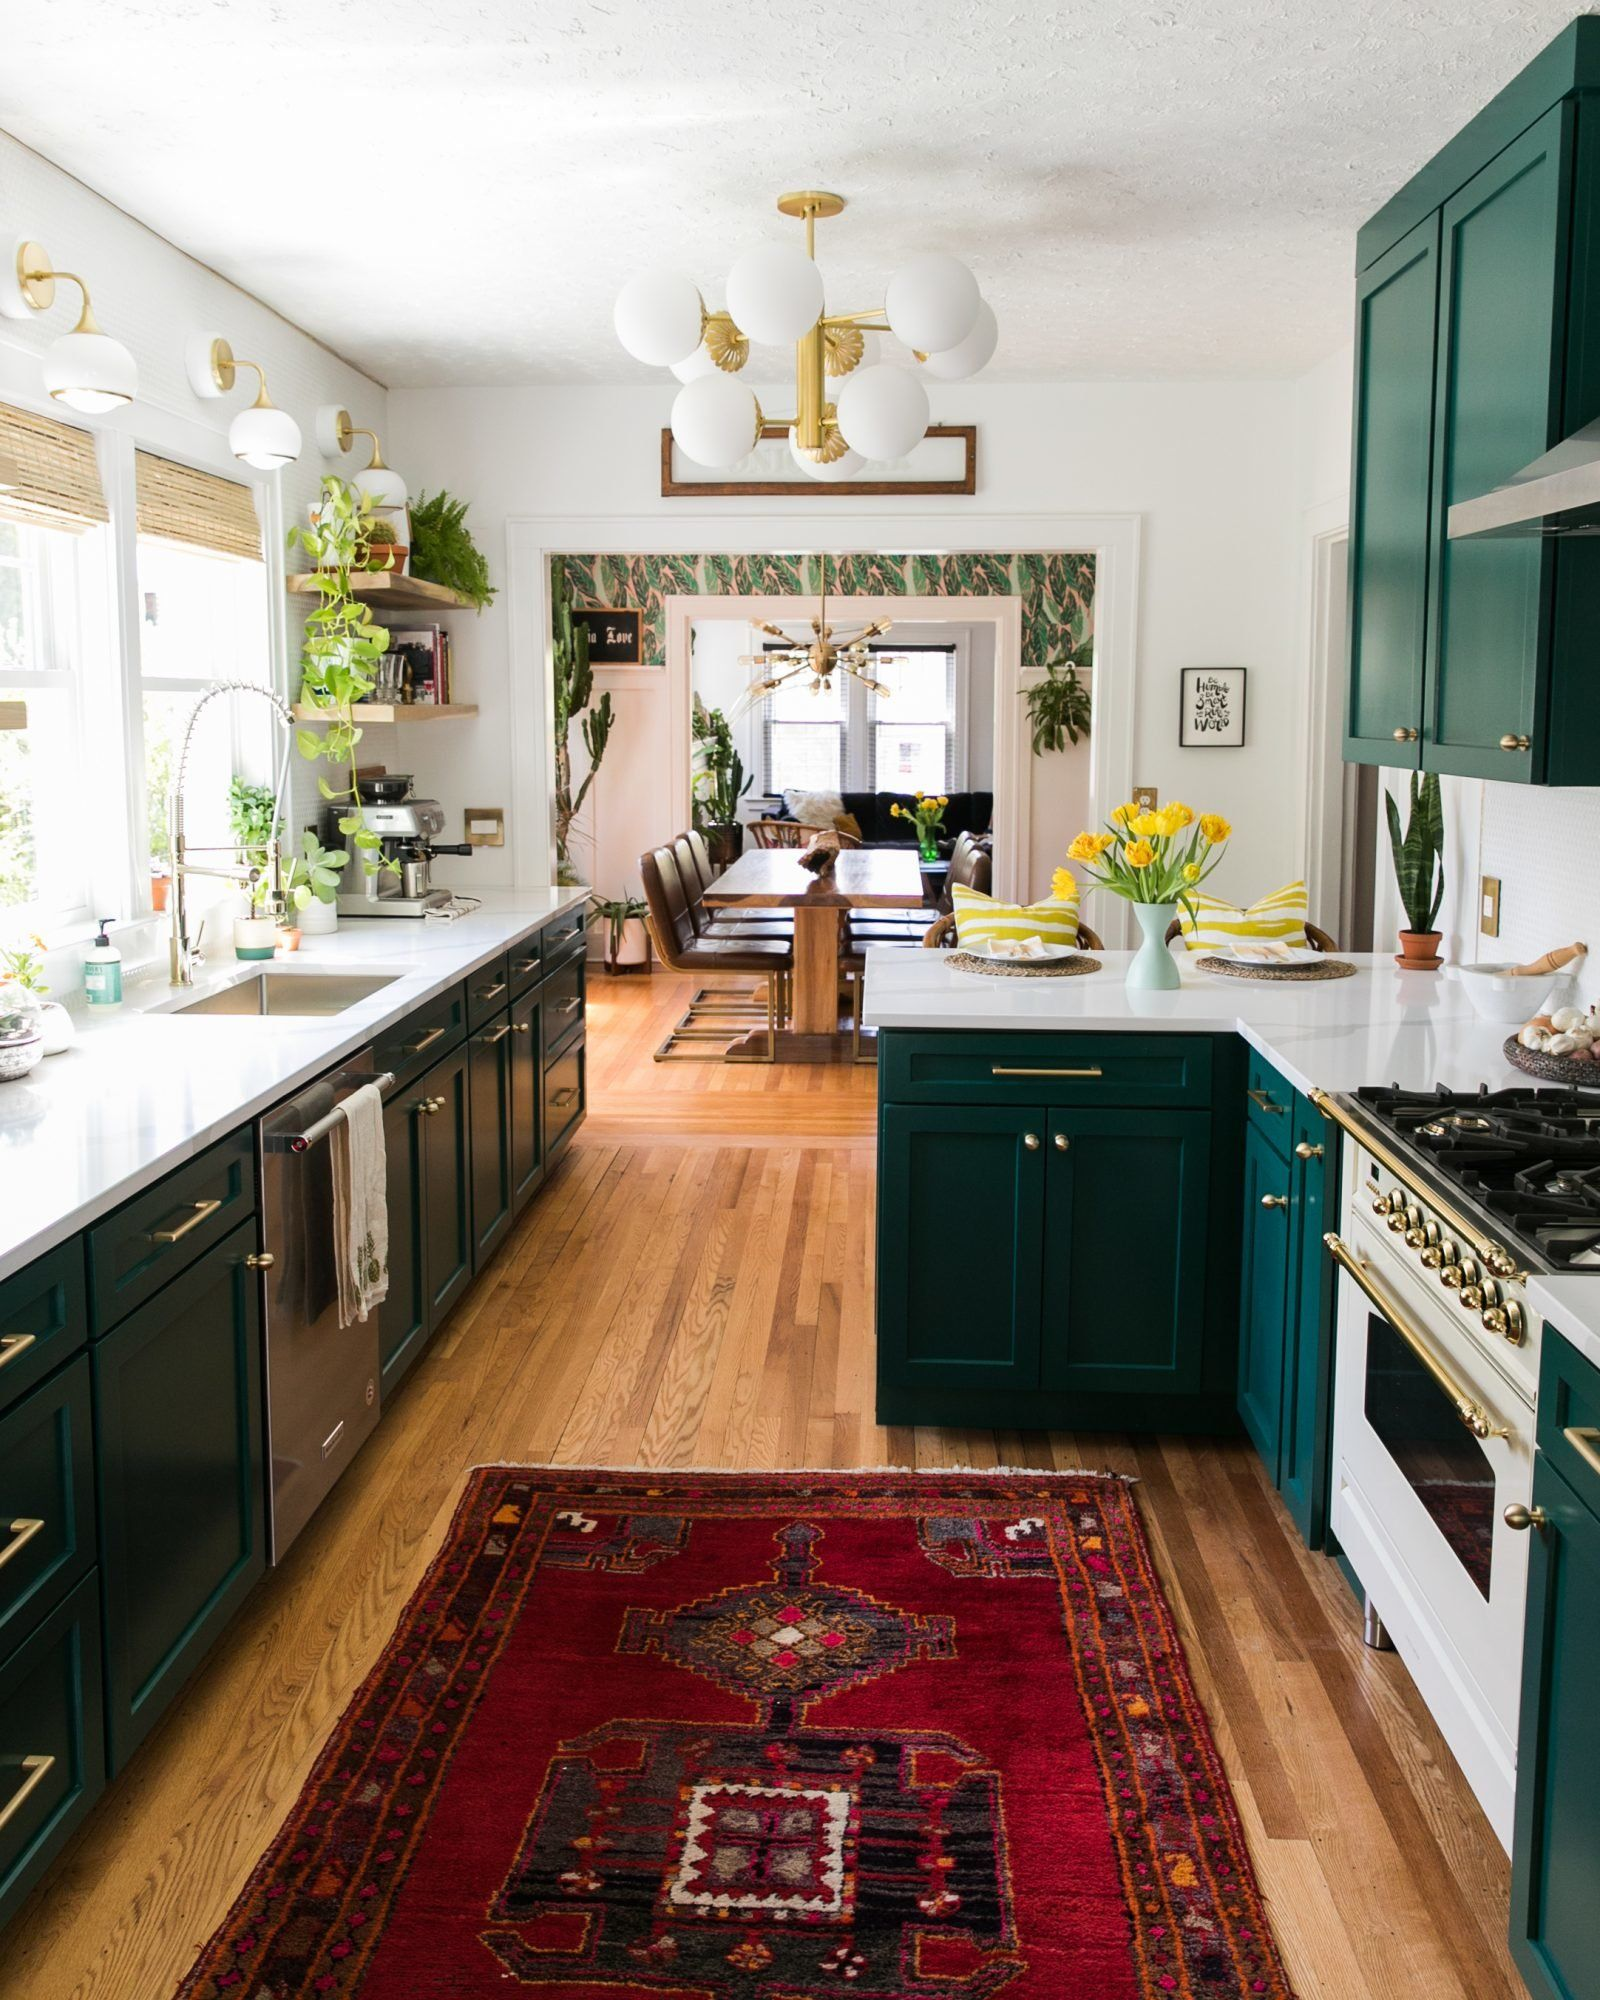 experts say these kitchen trends will be everywhere in 2020 kitchen trends bold kitchen on kitchen interior trend 2020 id=60246